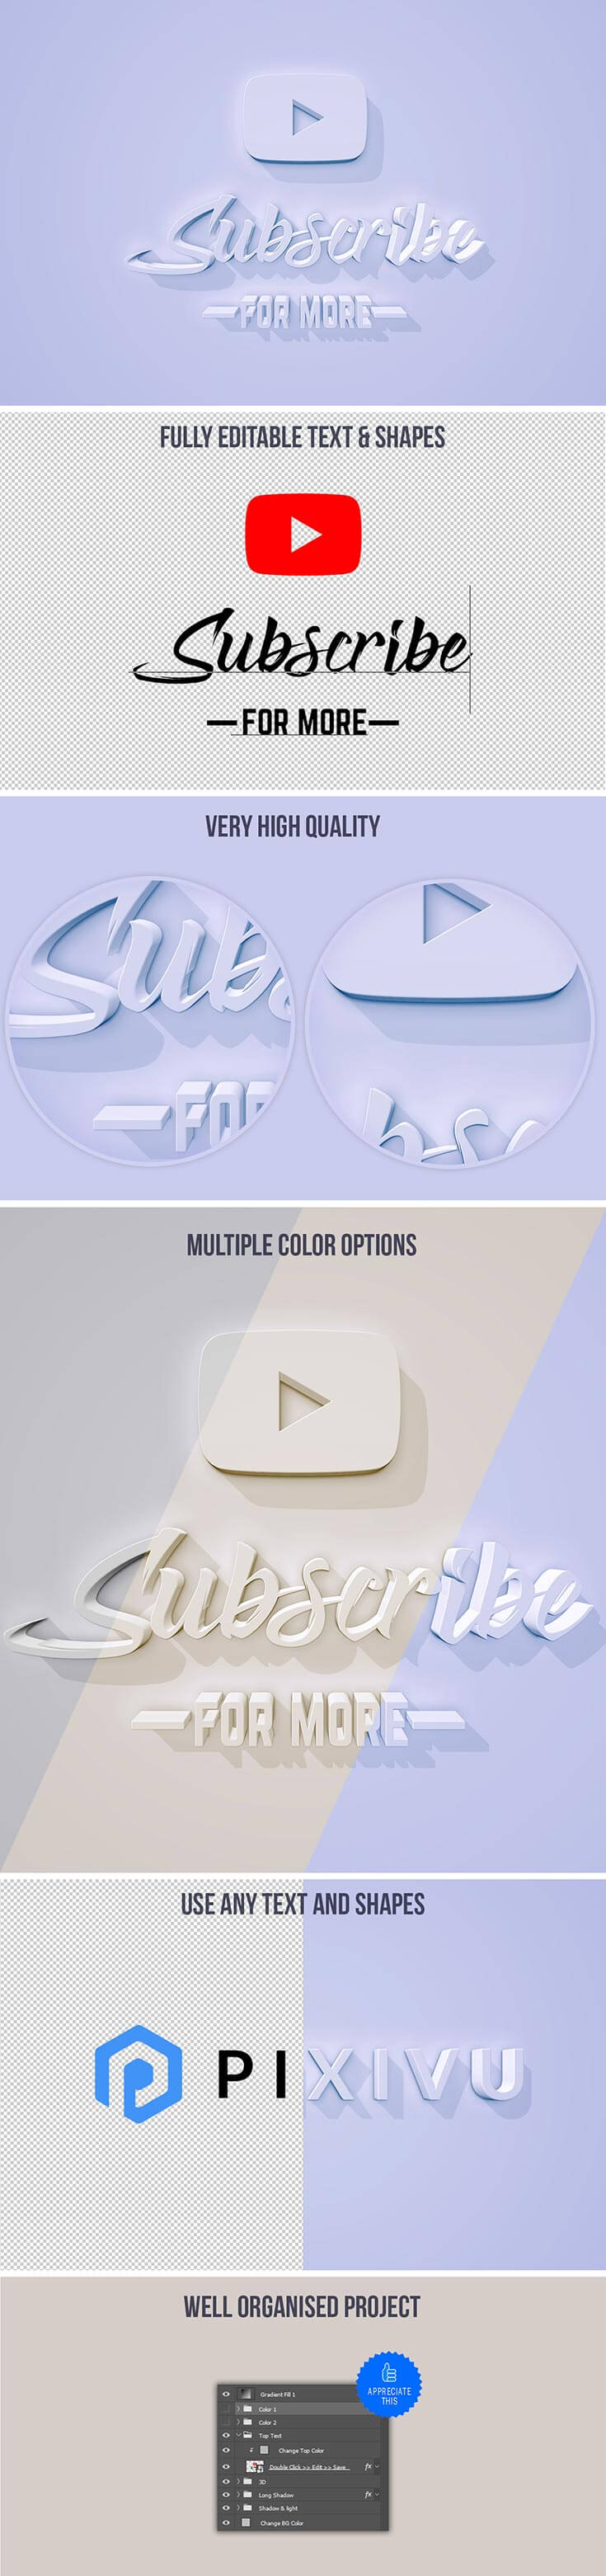 Free 3D Text Effect